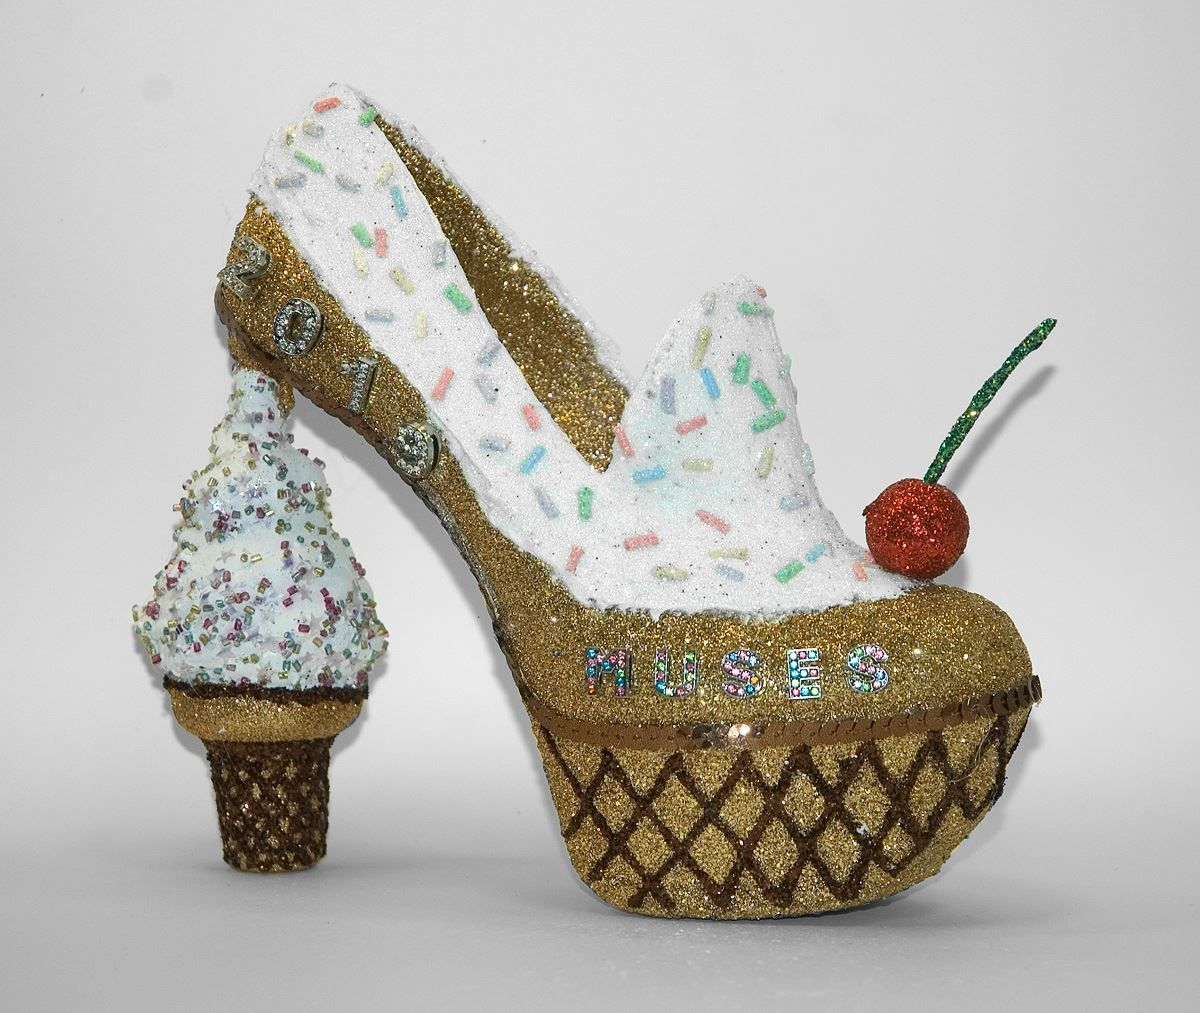 Ice Cream Cone Shoe By Muses Shoes By Ani Krewe Of Muses 2019 Muses Shoes Glitter Shoes Feet Accessories